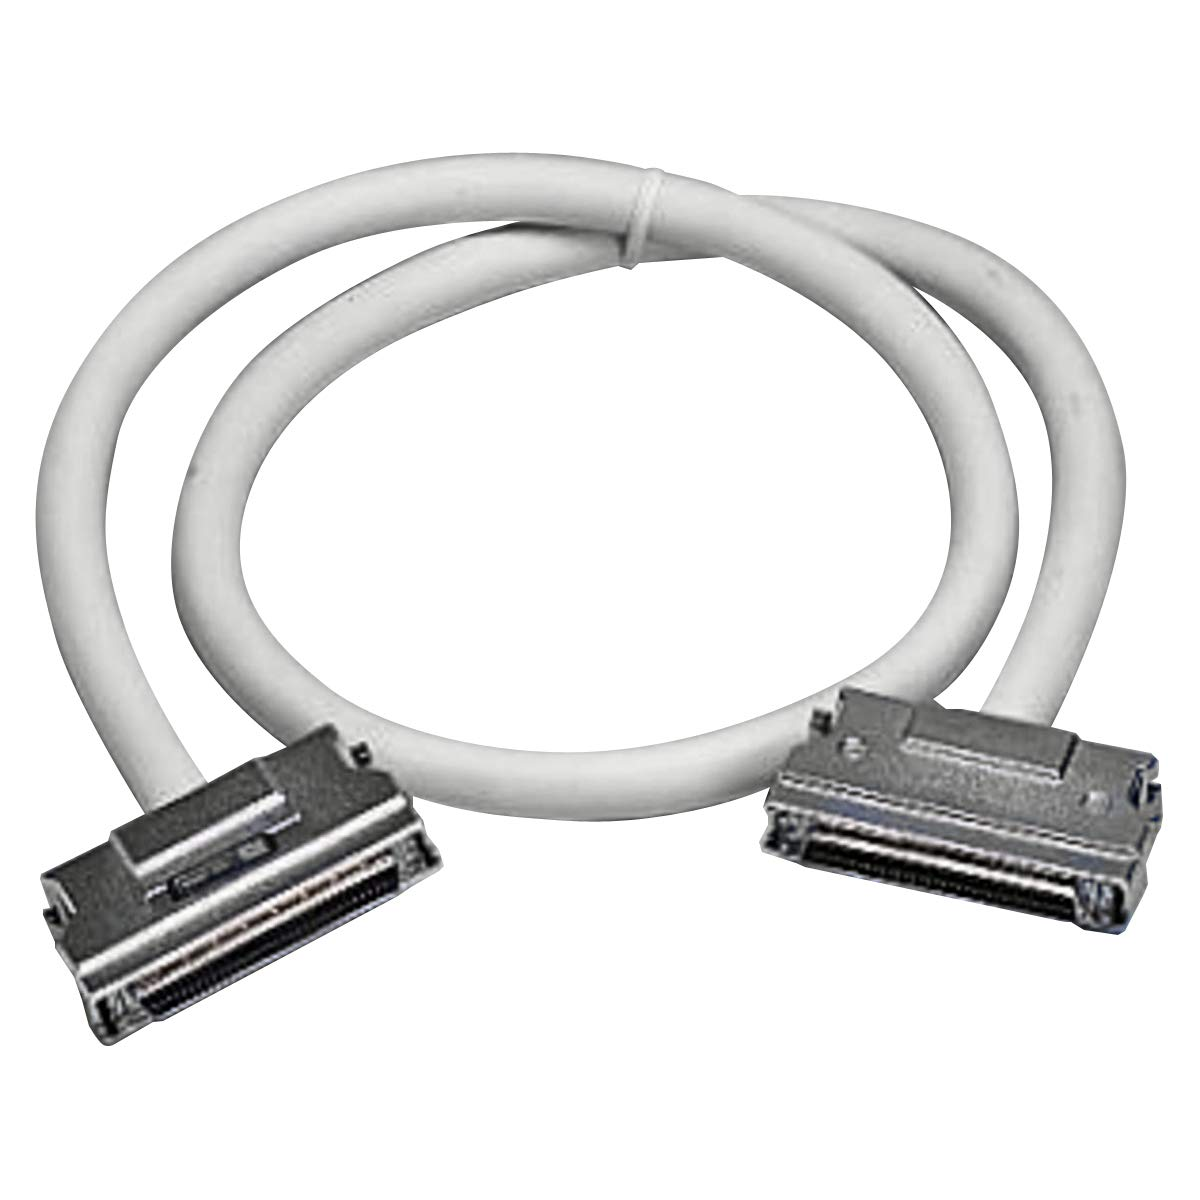 Clip Fastener Male SCSI III to Male SCSI III SCSI Cable Assembly GTT Length=3M